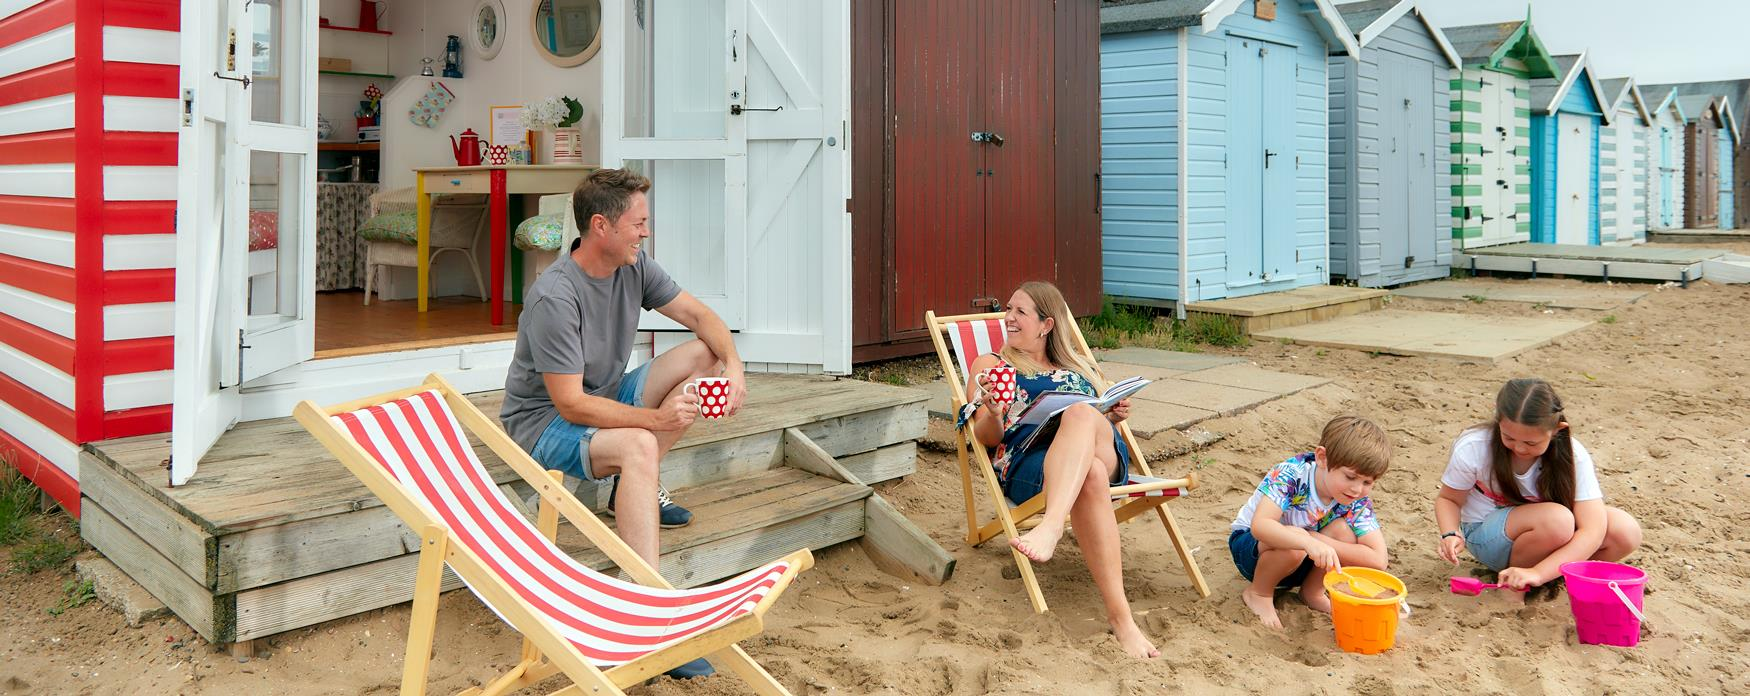 Family sitting outside red beach hut at Mersea island